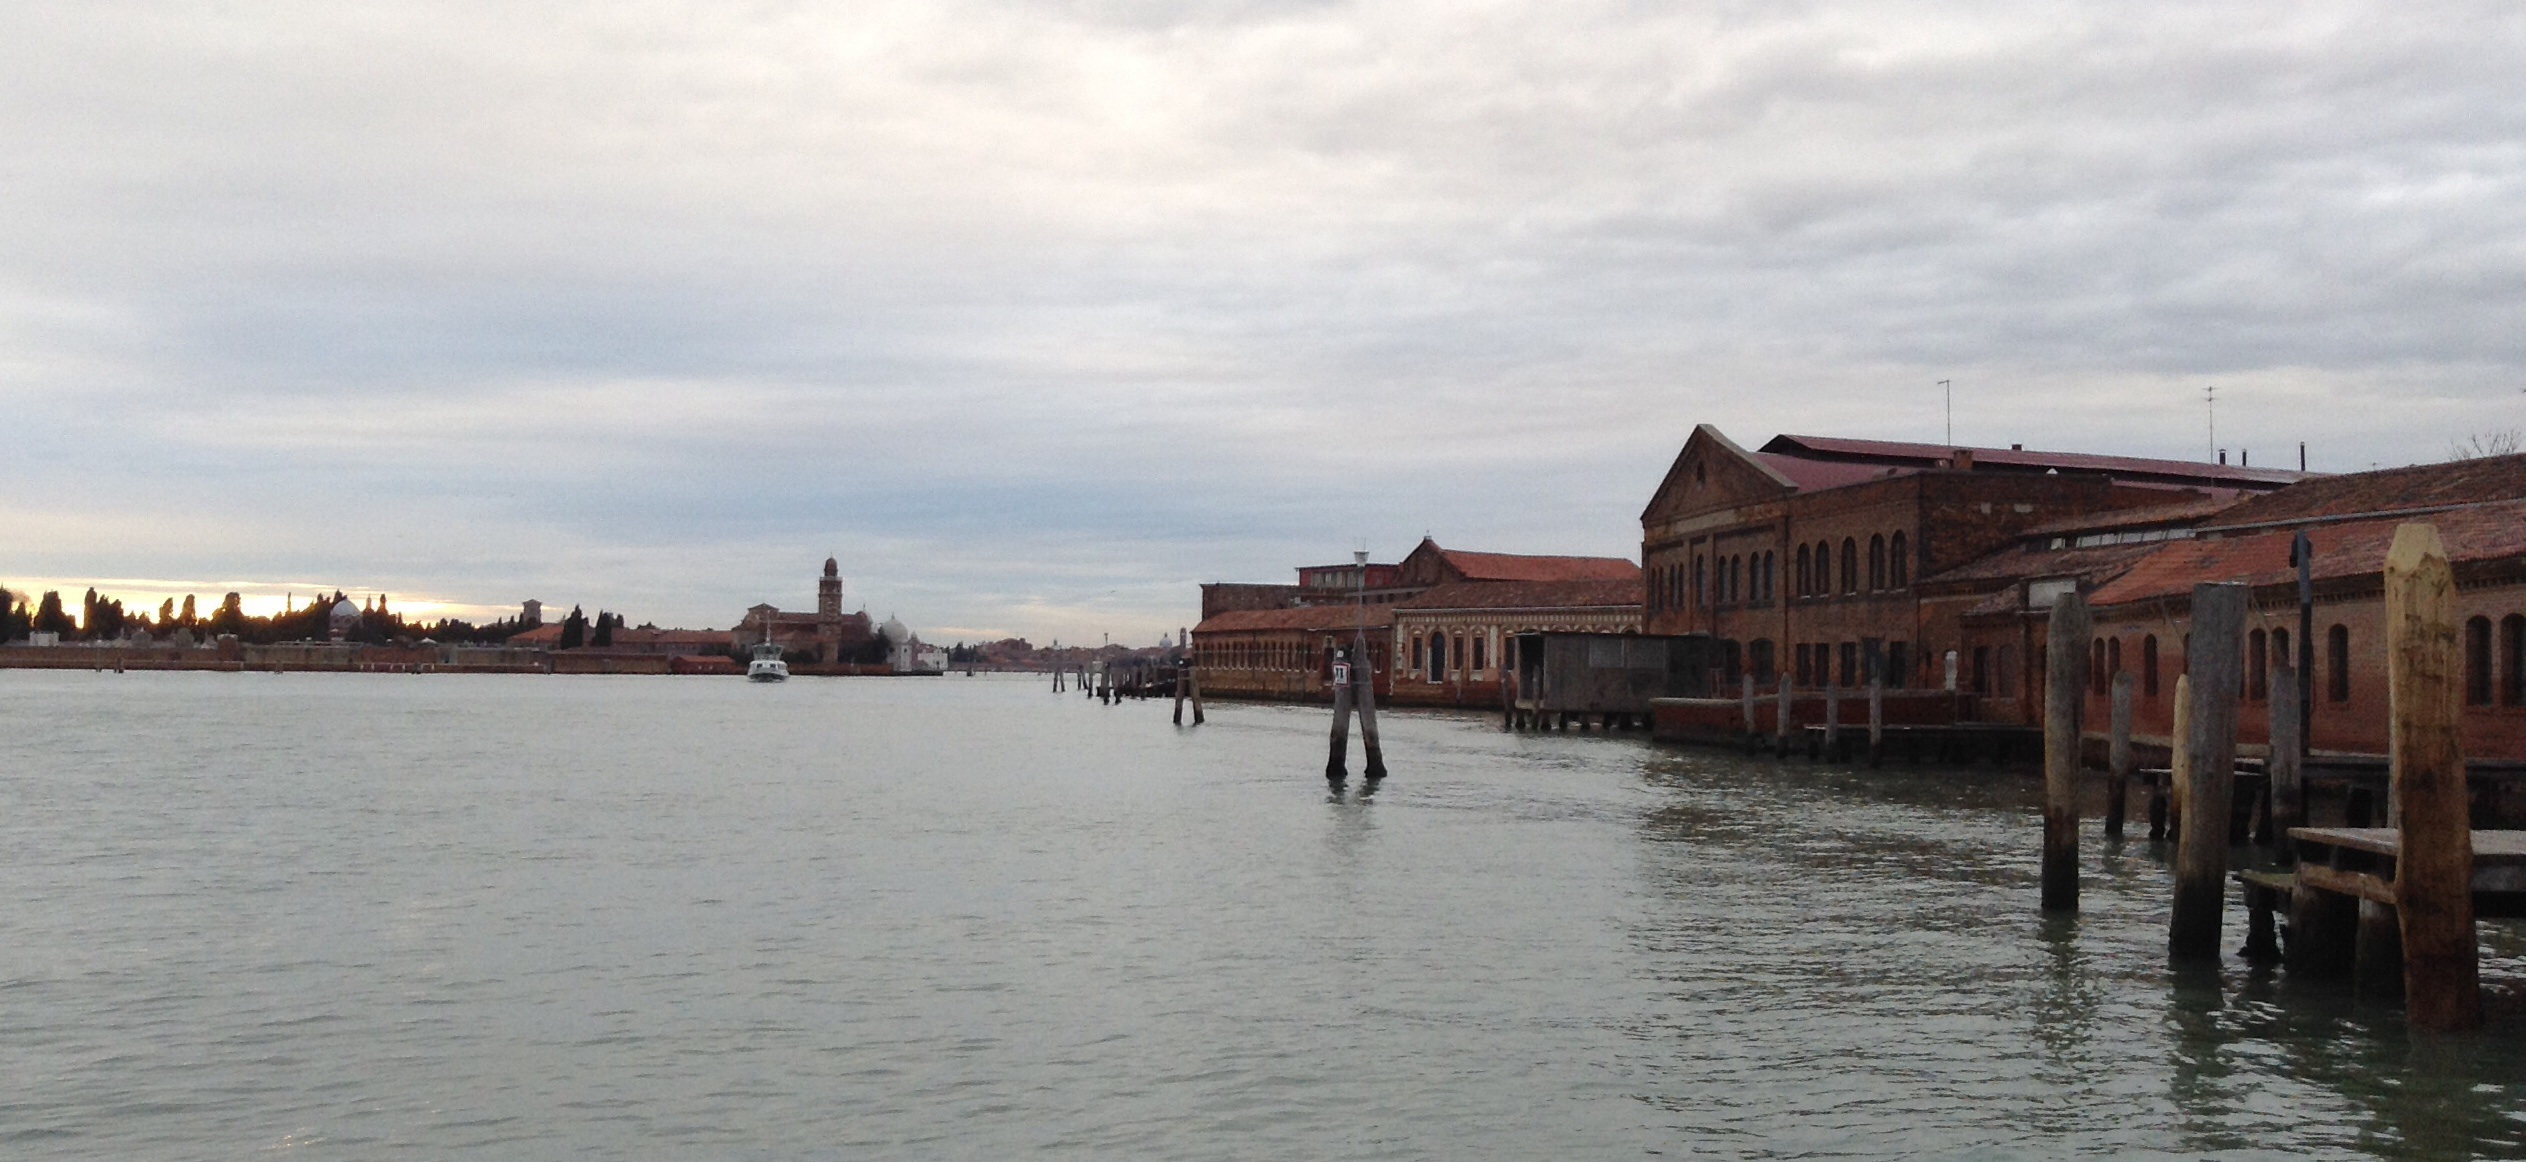 Murano from a boat